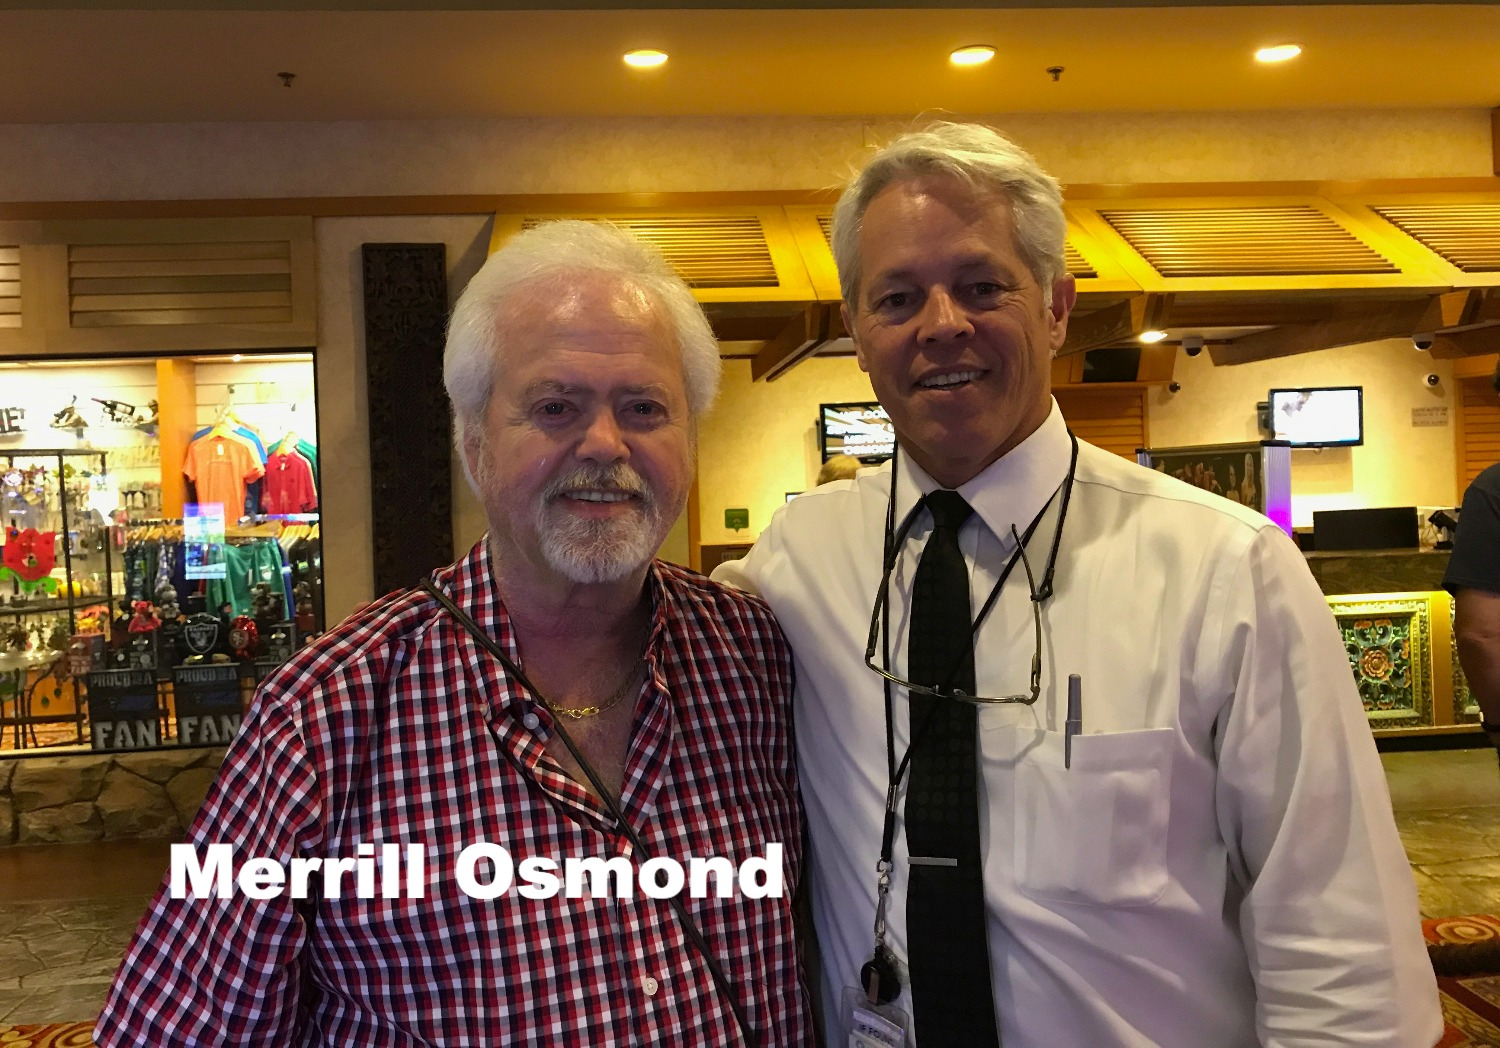 MerrillOsmond09172017_edited